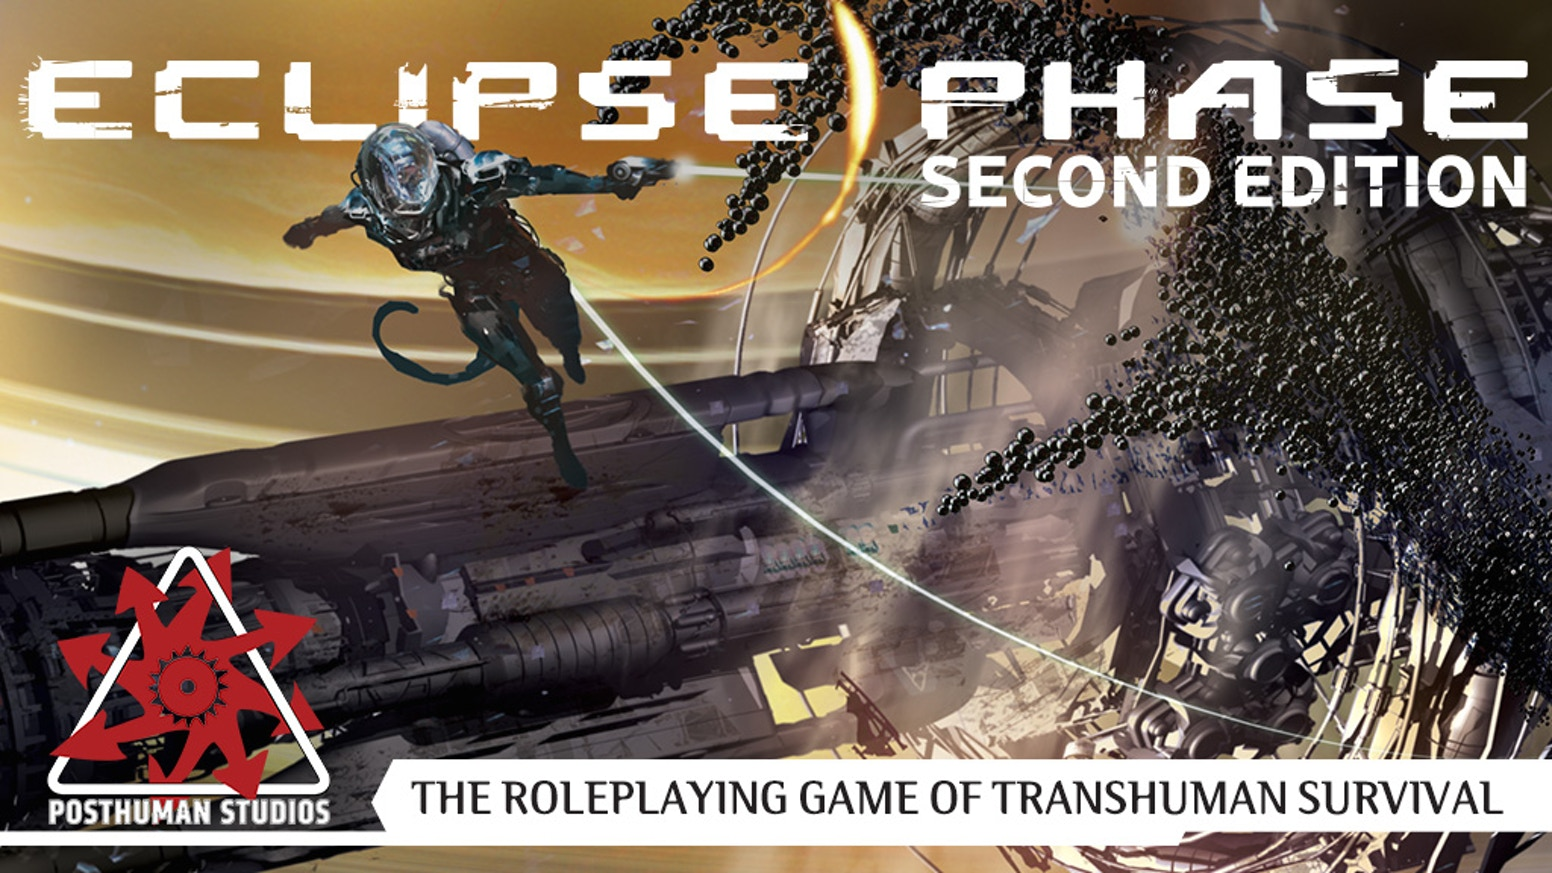 Eclipse Phase Second Edition Rpg By Infomorph Kickstarter Barton Python Mono The Roleplaying Game Of Transhuman Survival A Streamlined